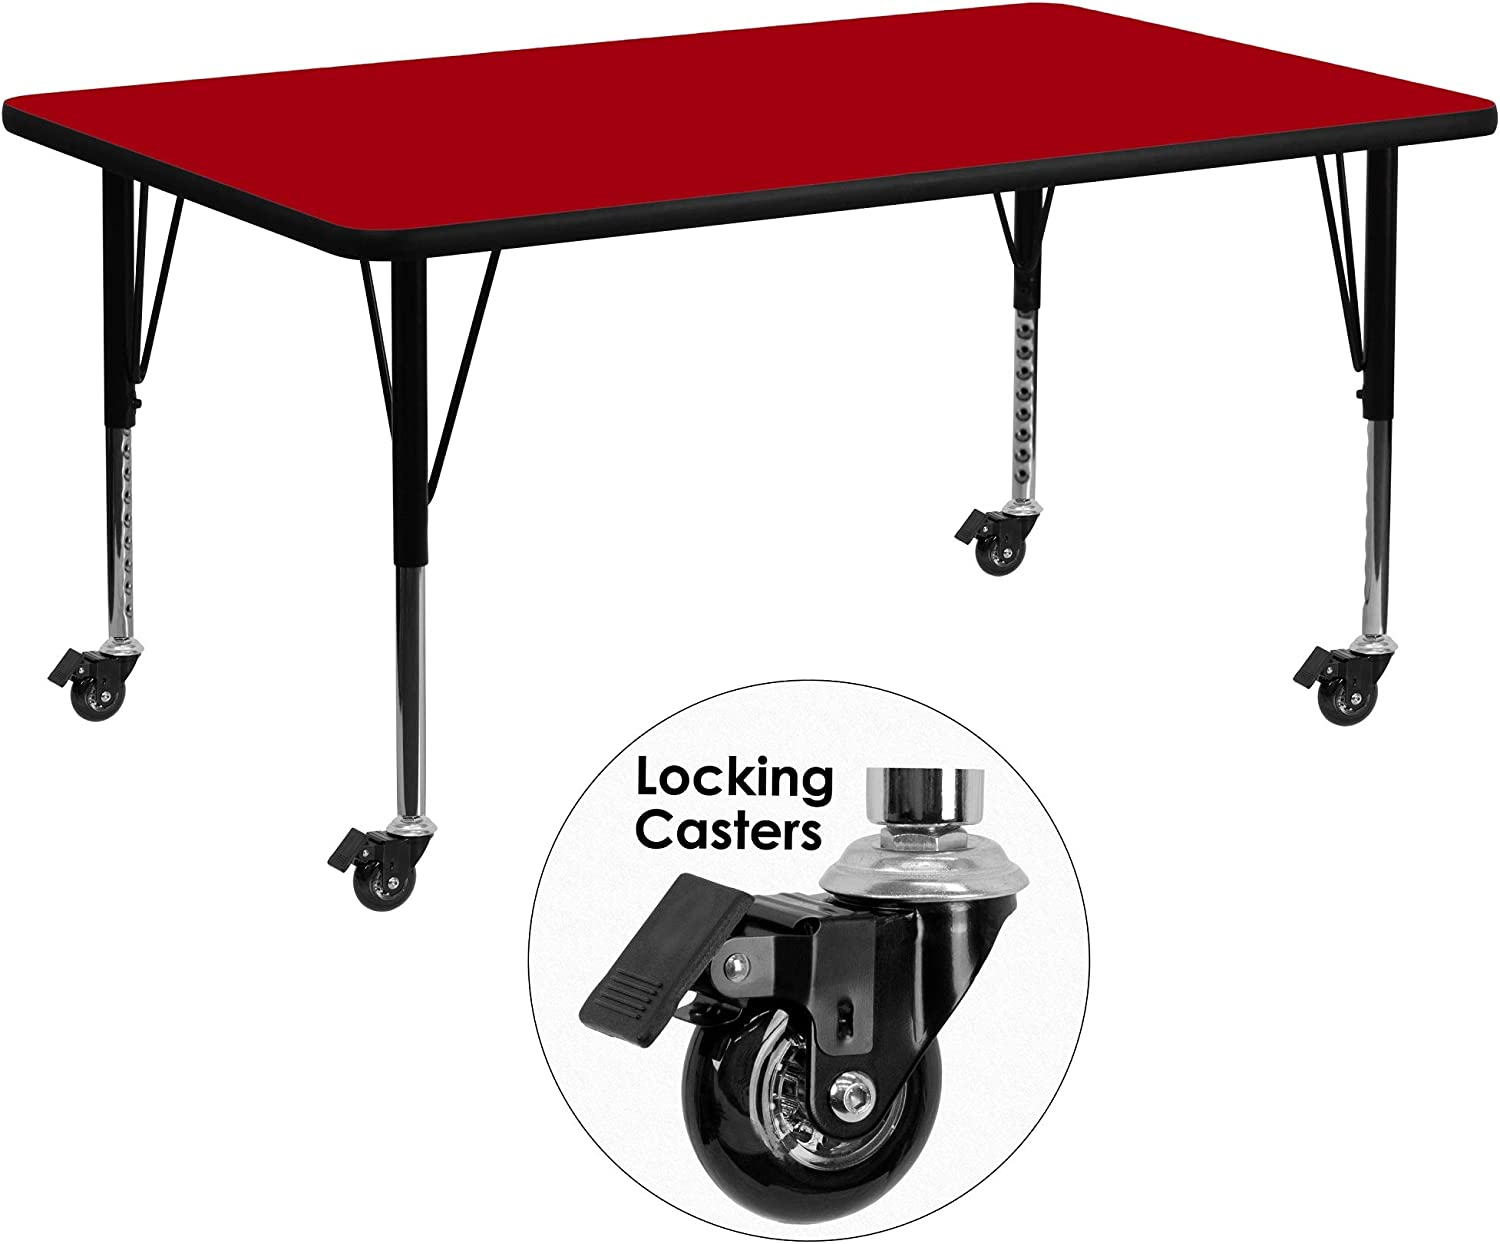 F/&F Furniture Group 72 Red Mobile Activity Table with Height Adjustable Short Legs